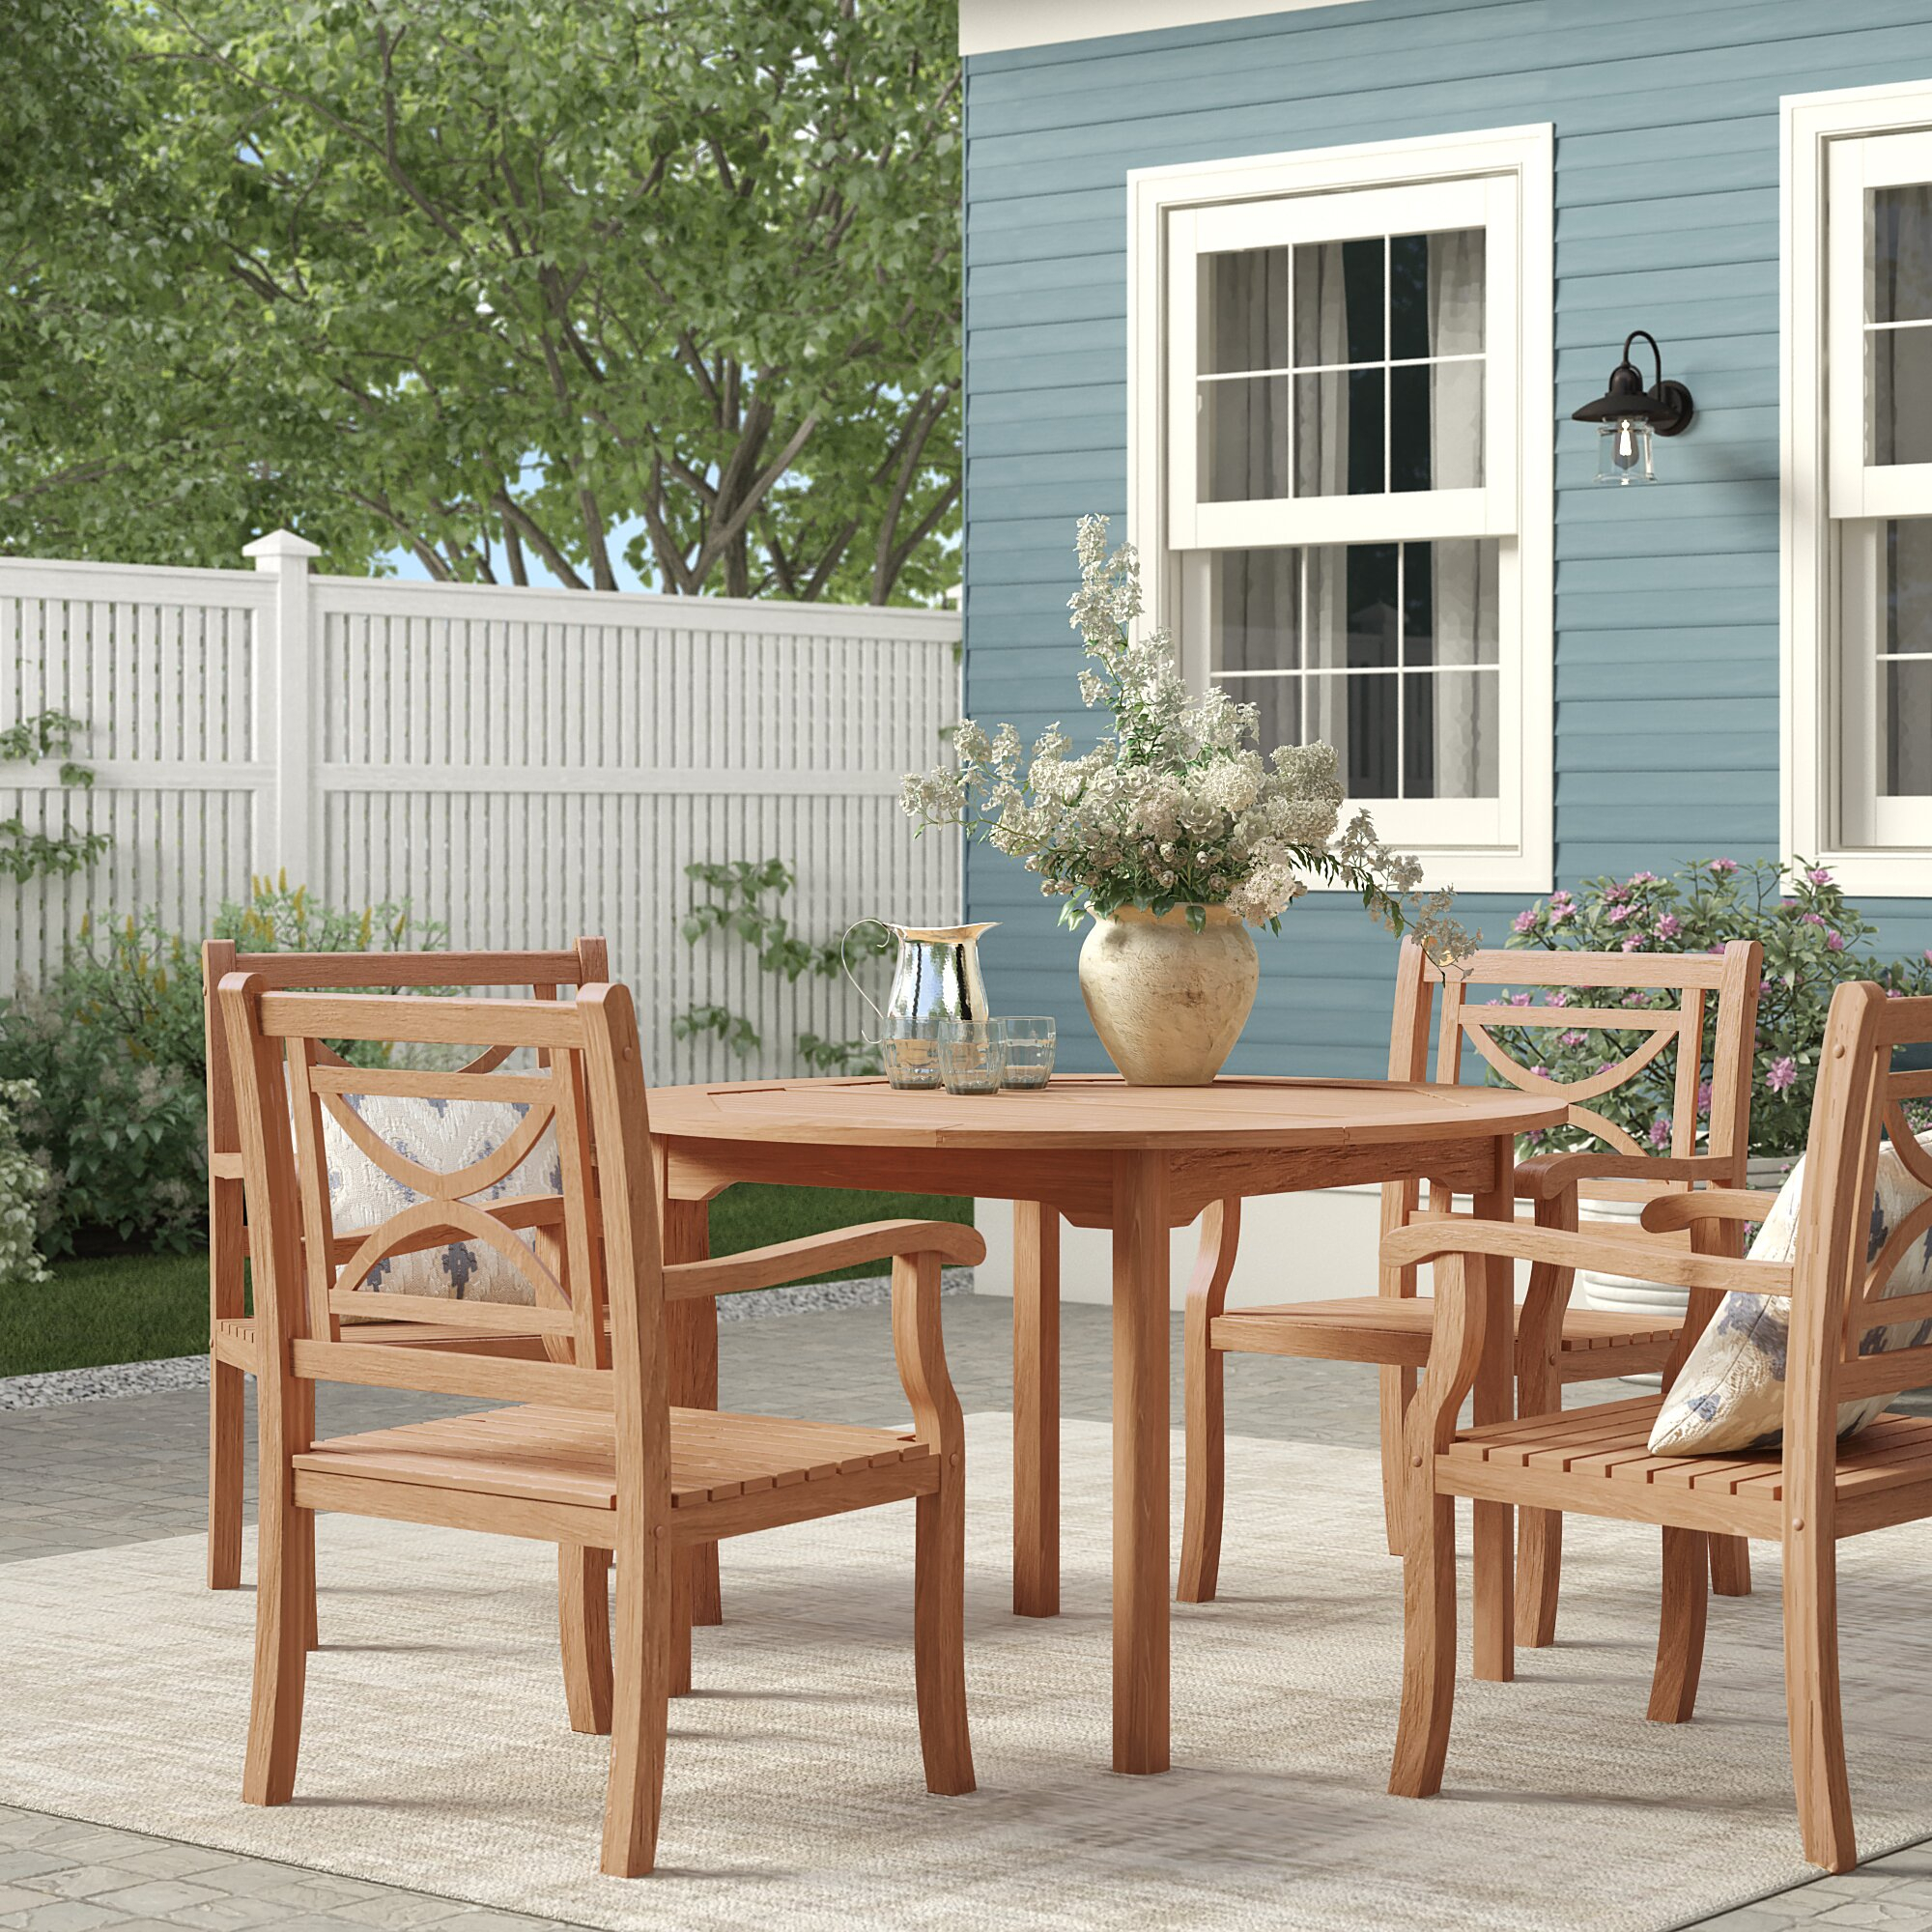 Brunswick 5 Piece Teak Dining Set With Regard To Current Adan 5 Piece Solid Wood Dining Sets (Set Of 5) (Image 14 of 20)